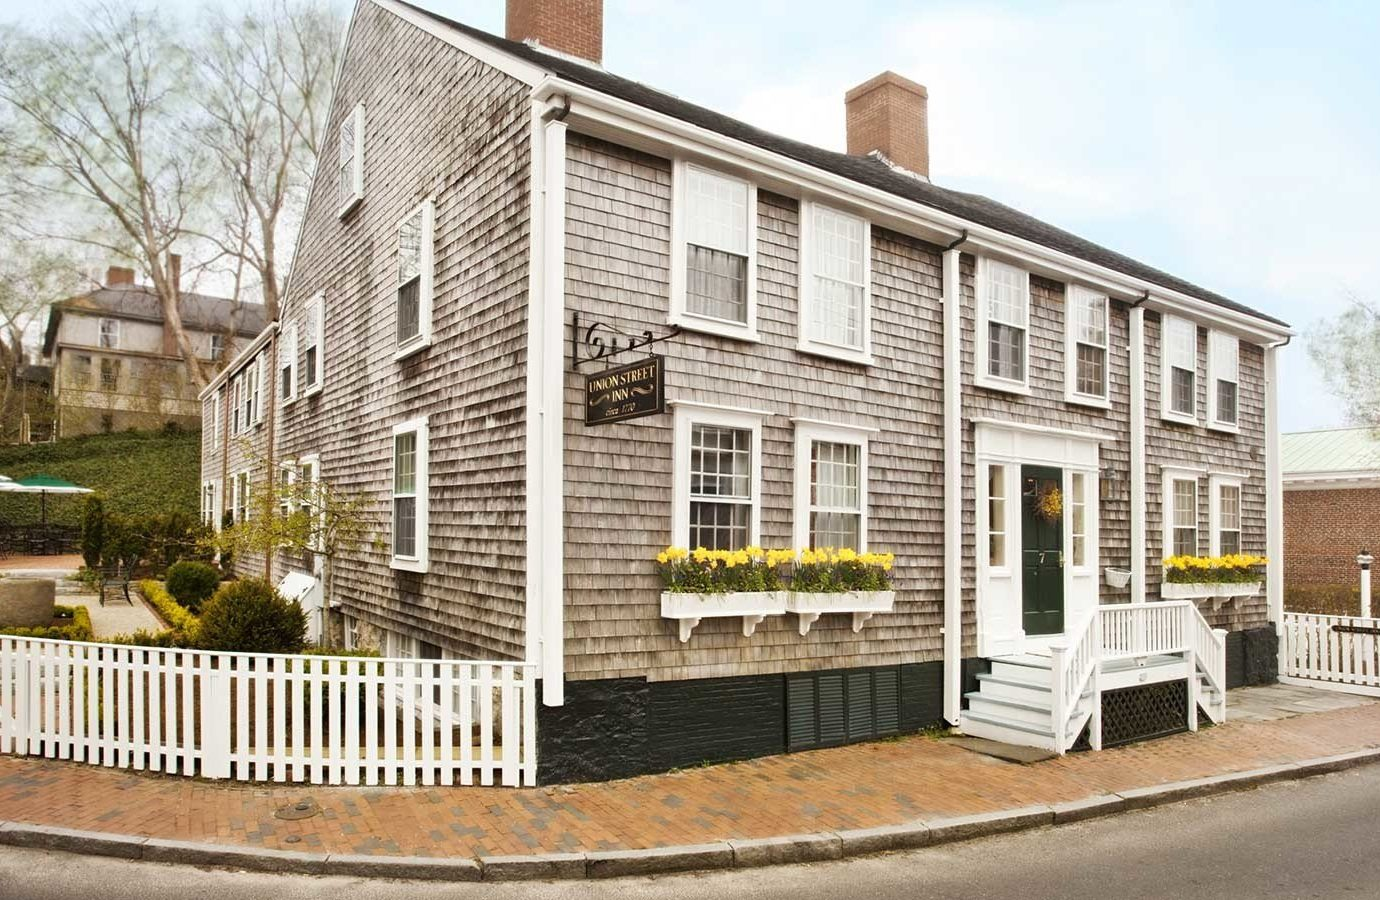 Hotels outdoor building road property house home street real estate cottage residential area neighbourhood window historic house facade siding estate stone curb